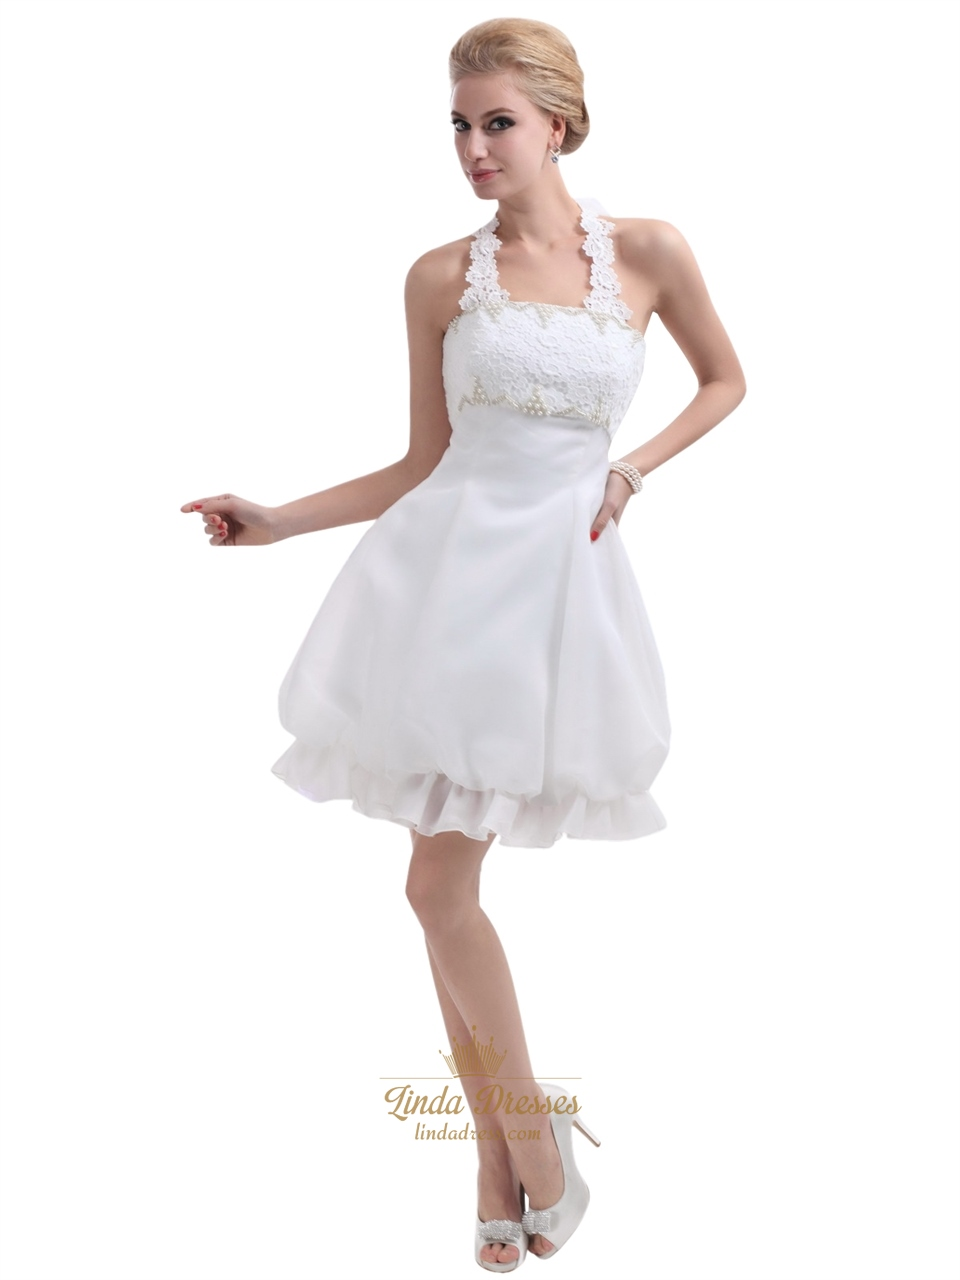 Short halter neck wedding dresses uk flower girl dresses for Short wedding dresses uk